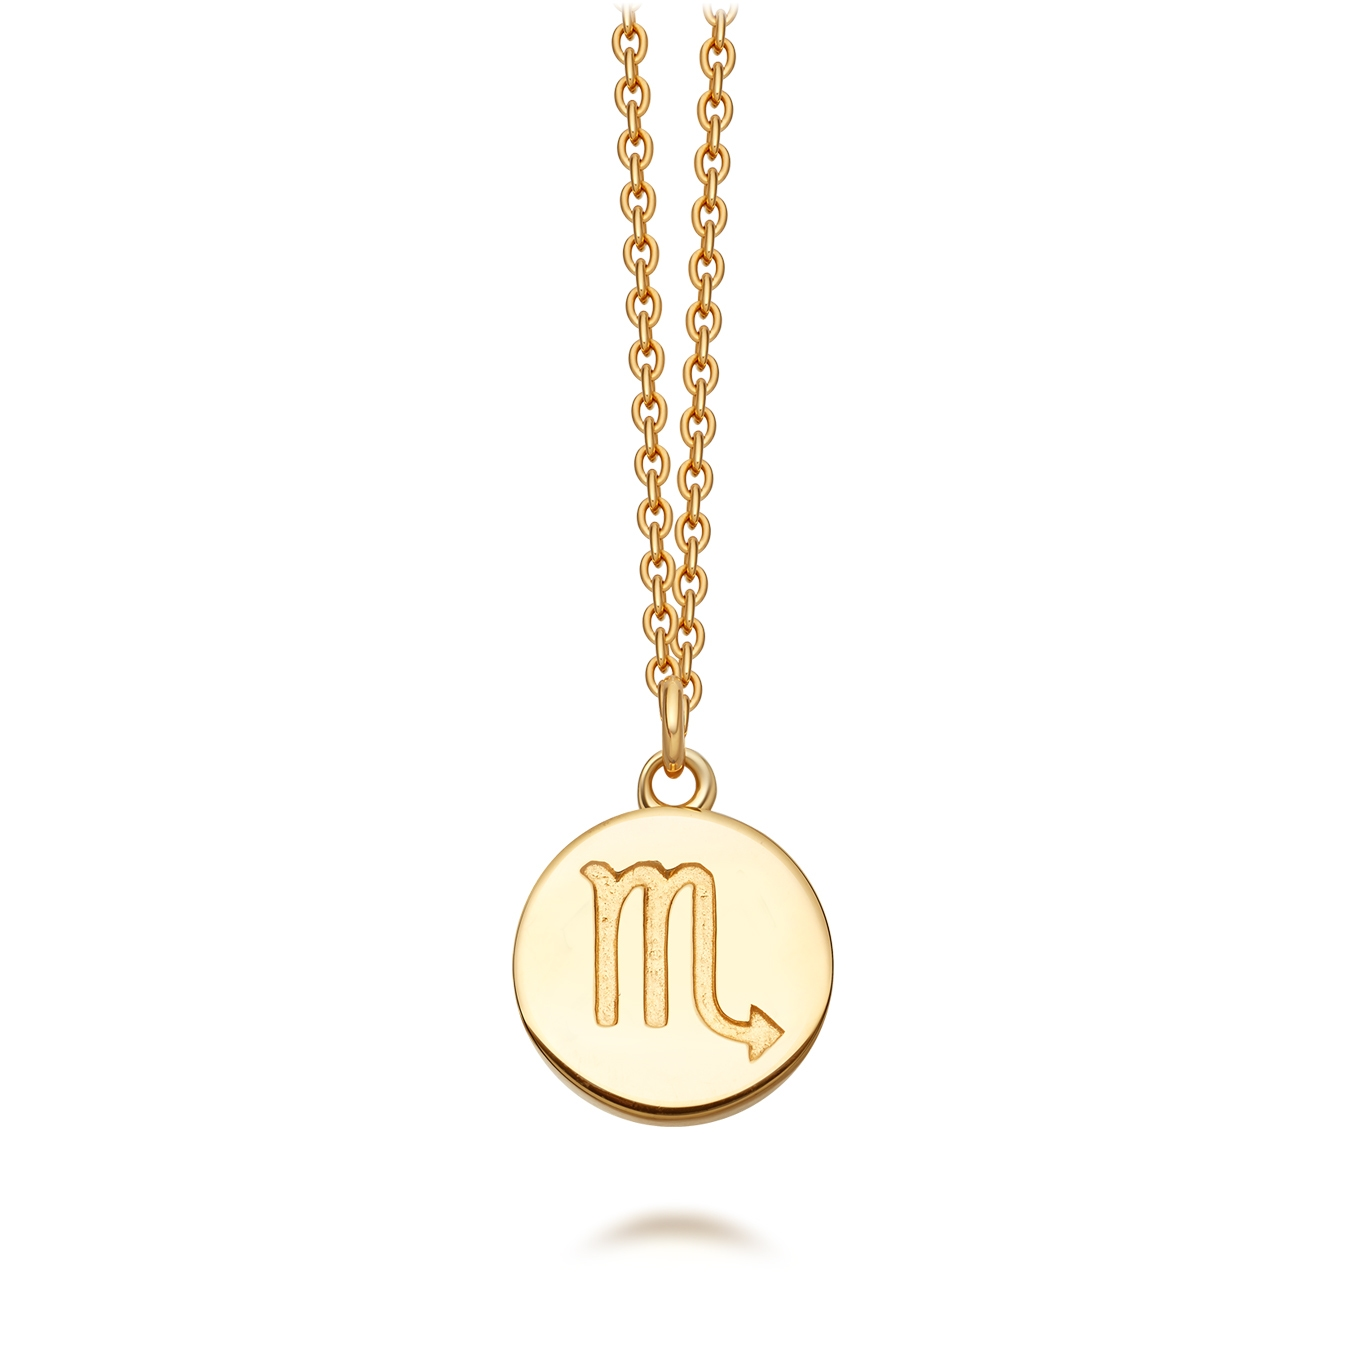 Gold Scorpio Zodiac Biography Pendant Necklace